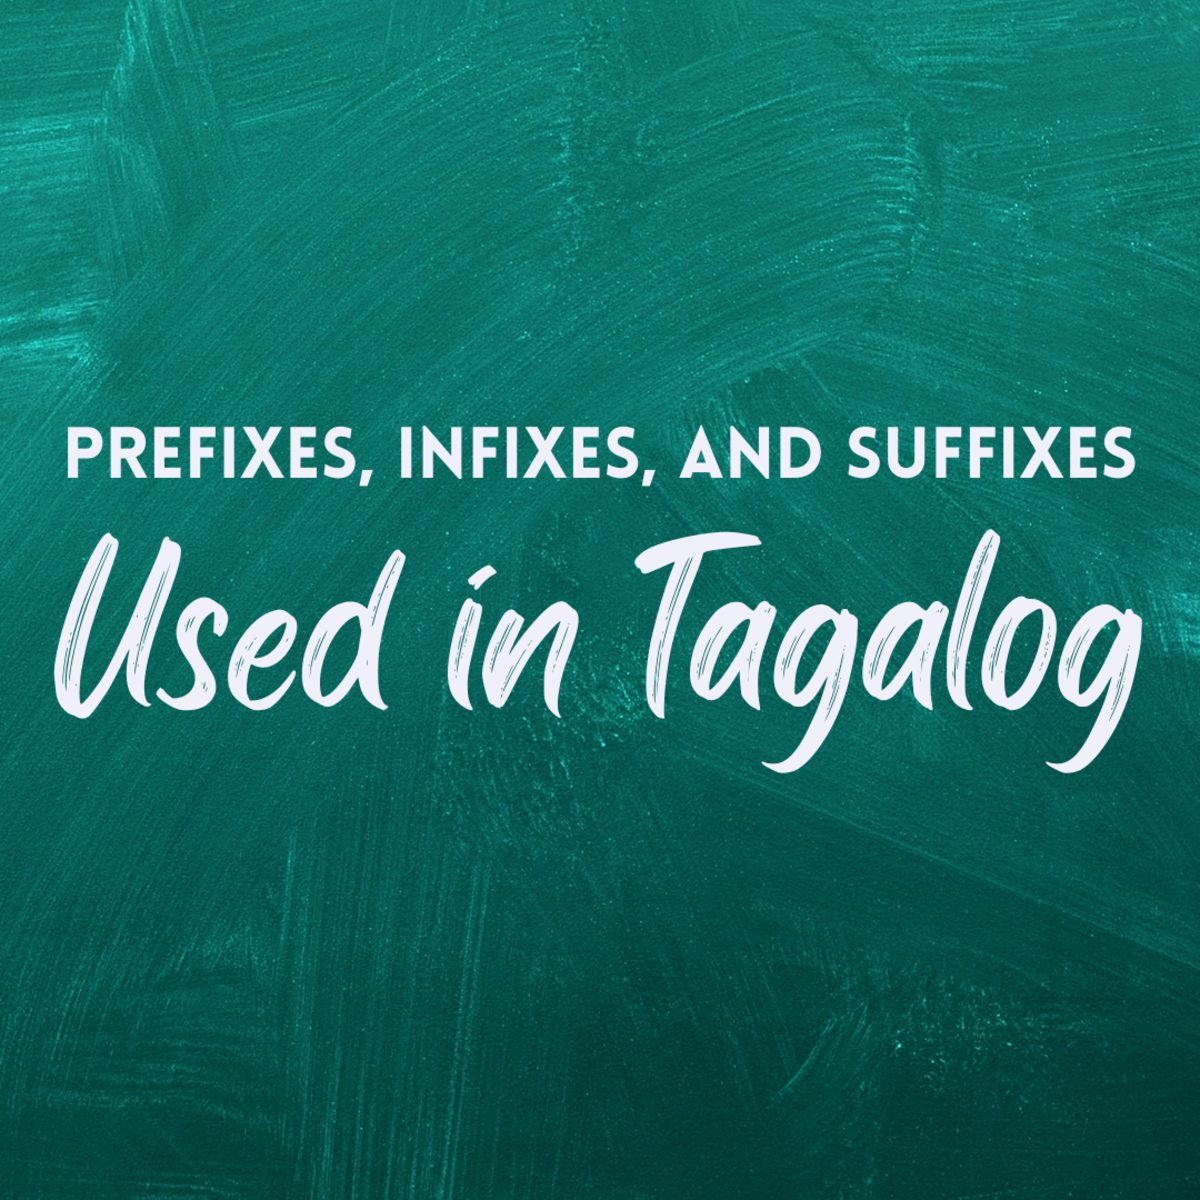 Learn about the most commonly used prefixes, infixes, and suffixes in Tagalog.